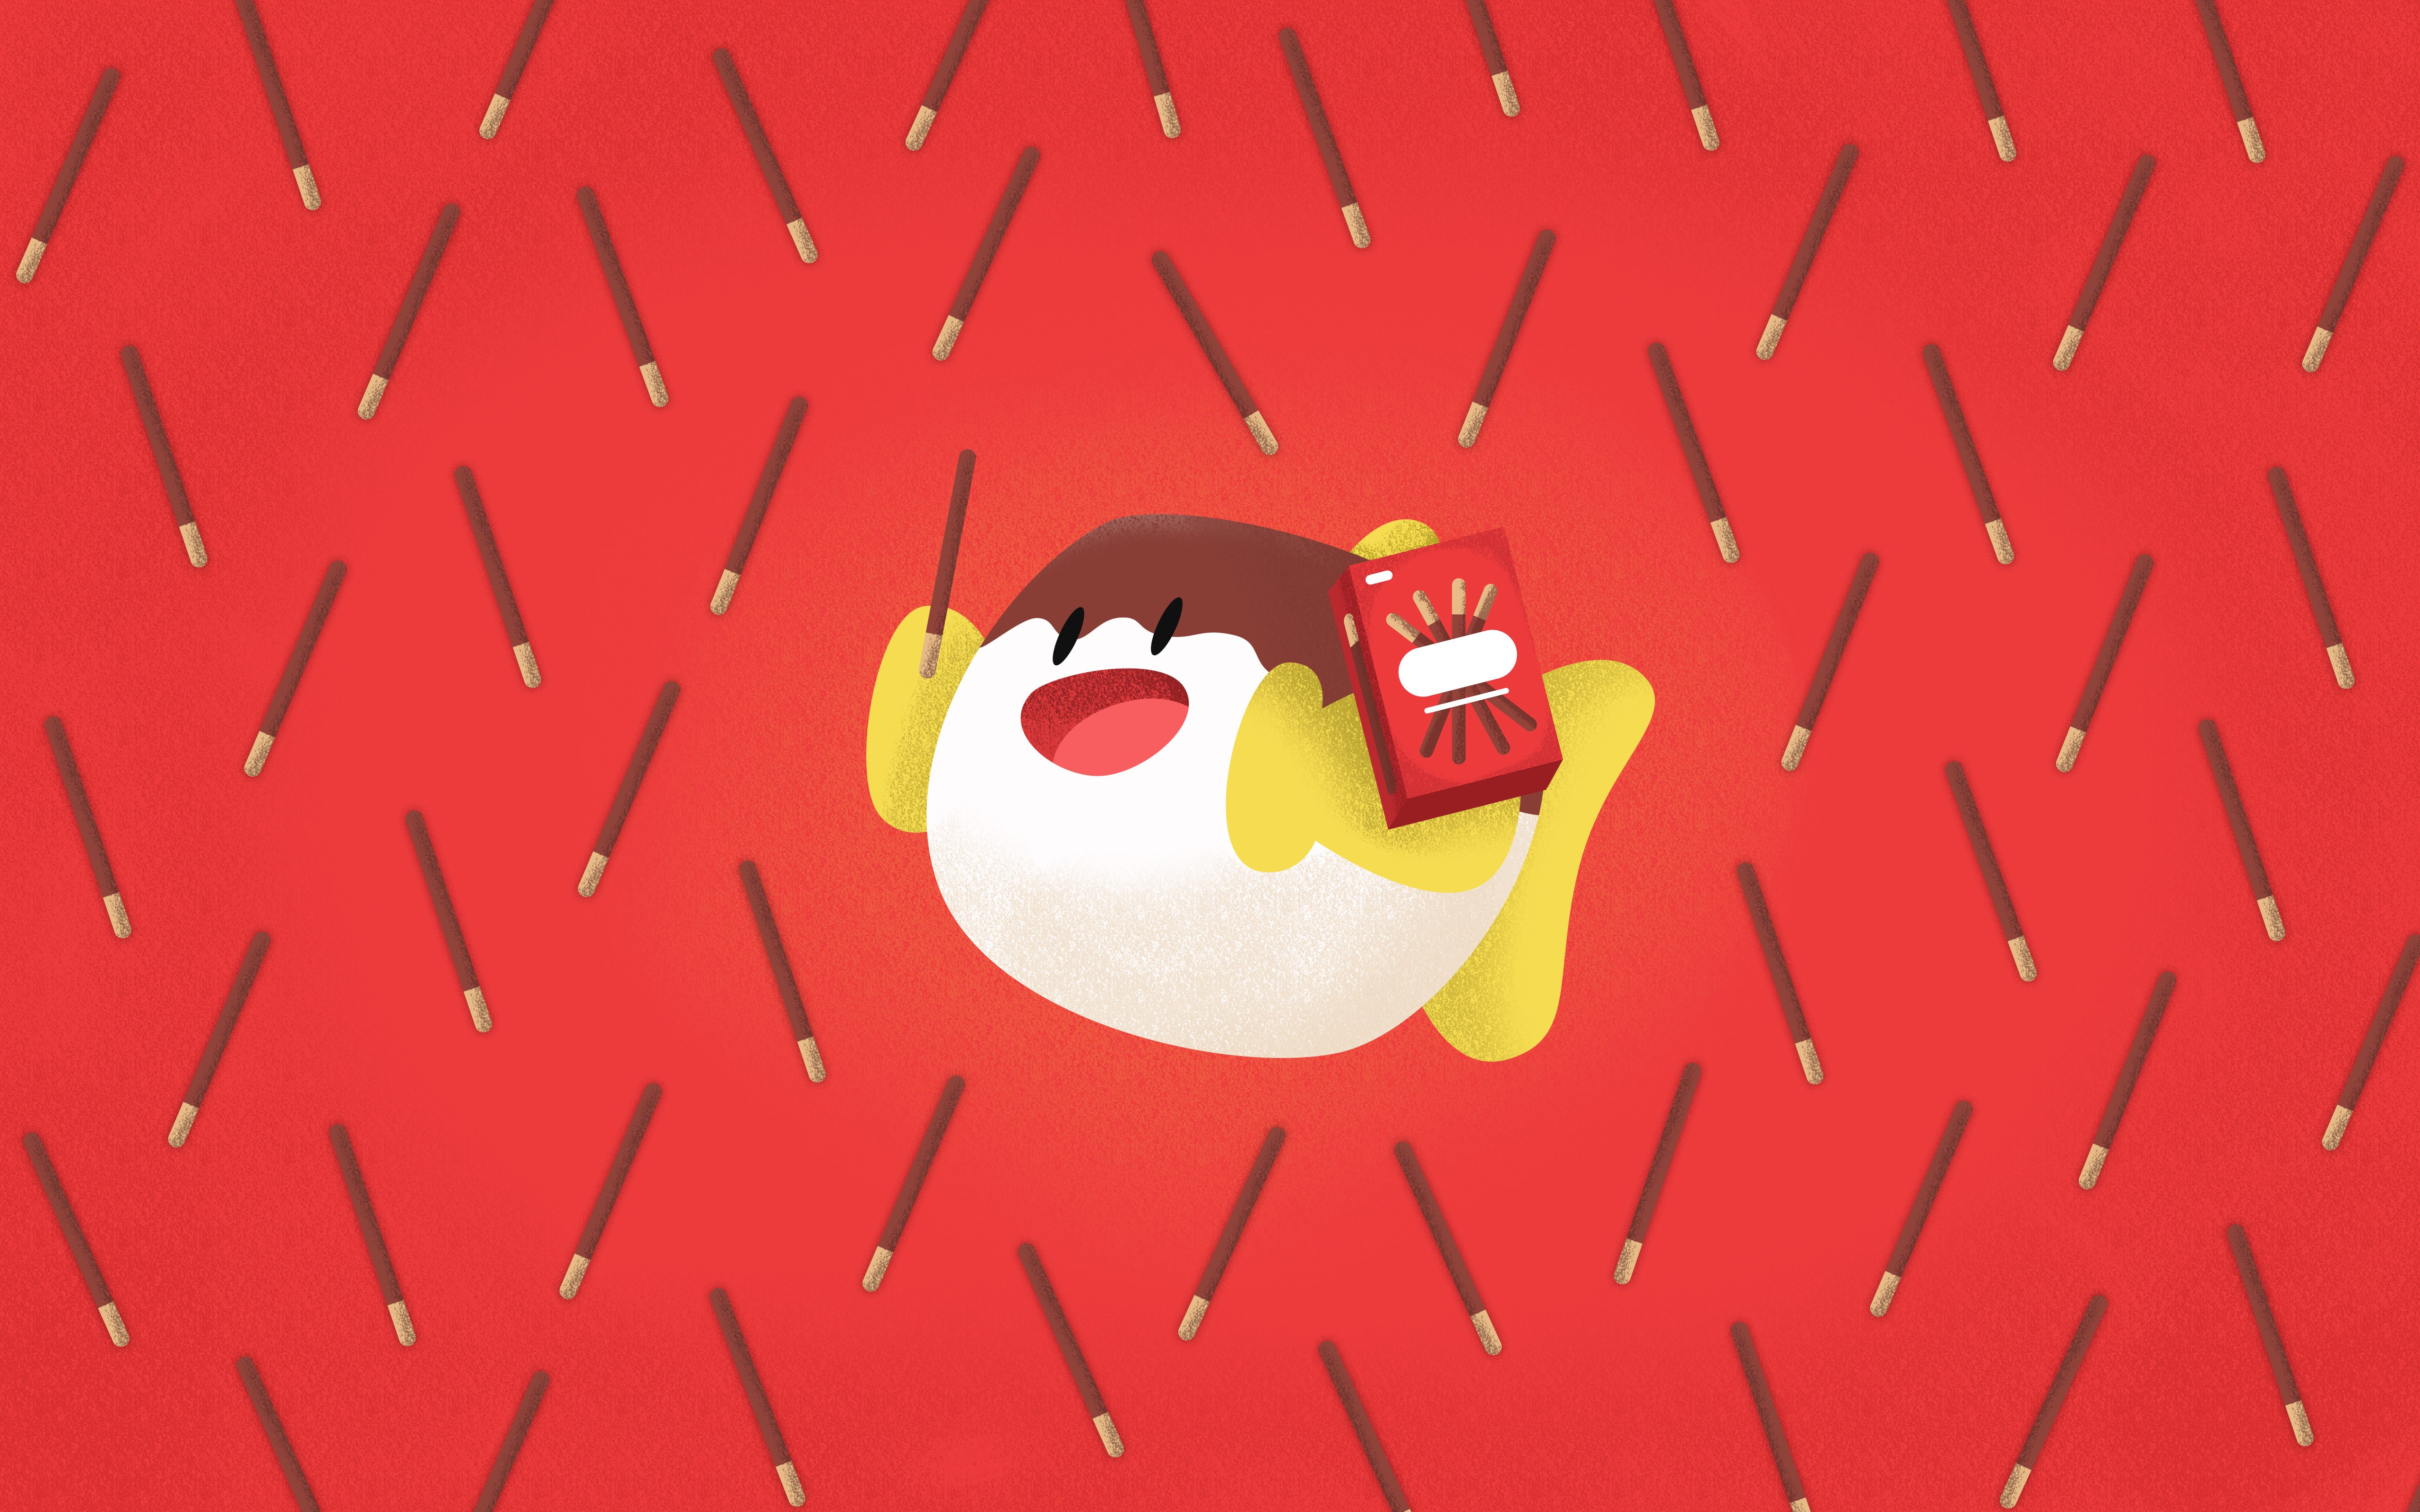 Time Wallpaper Quotes Pocky Day Celebrating Japan S Favorite Stick Snack